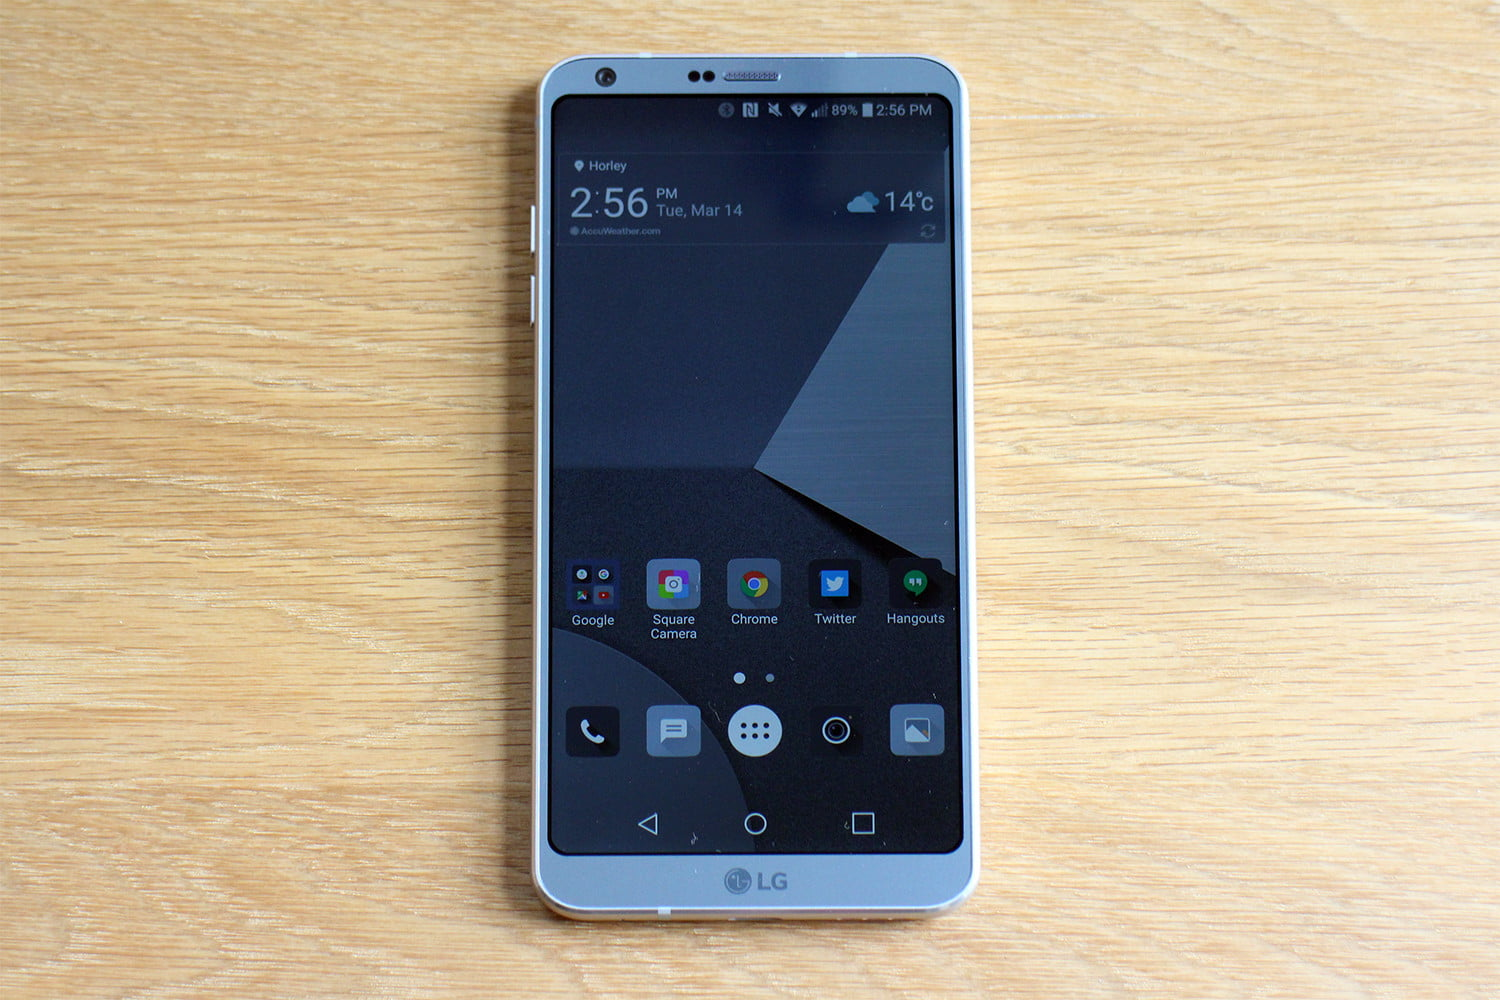 LG G6 Review: A New Standard in Smartphone Design | Digital Trends